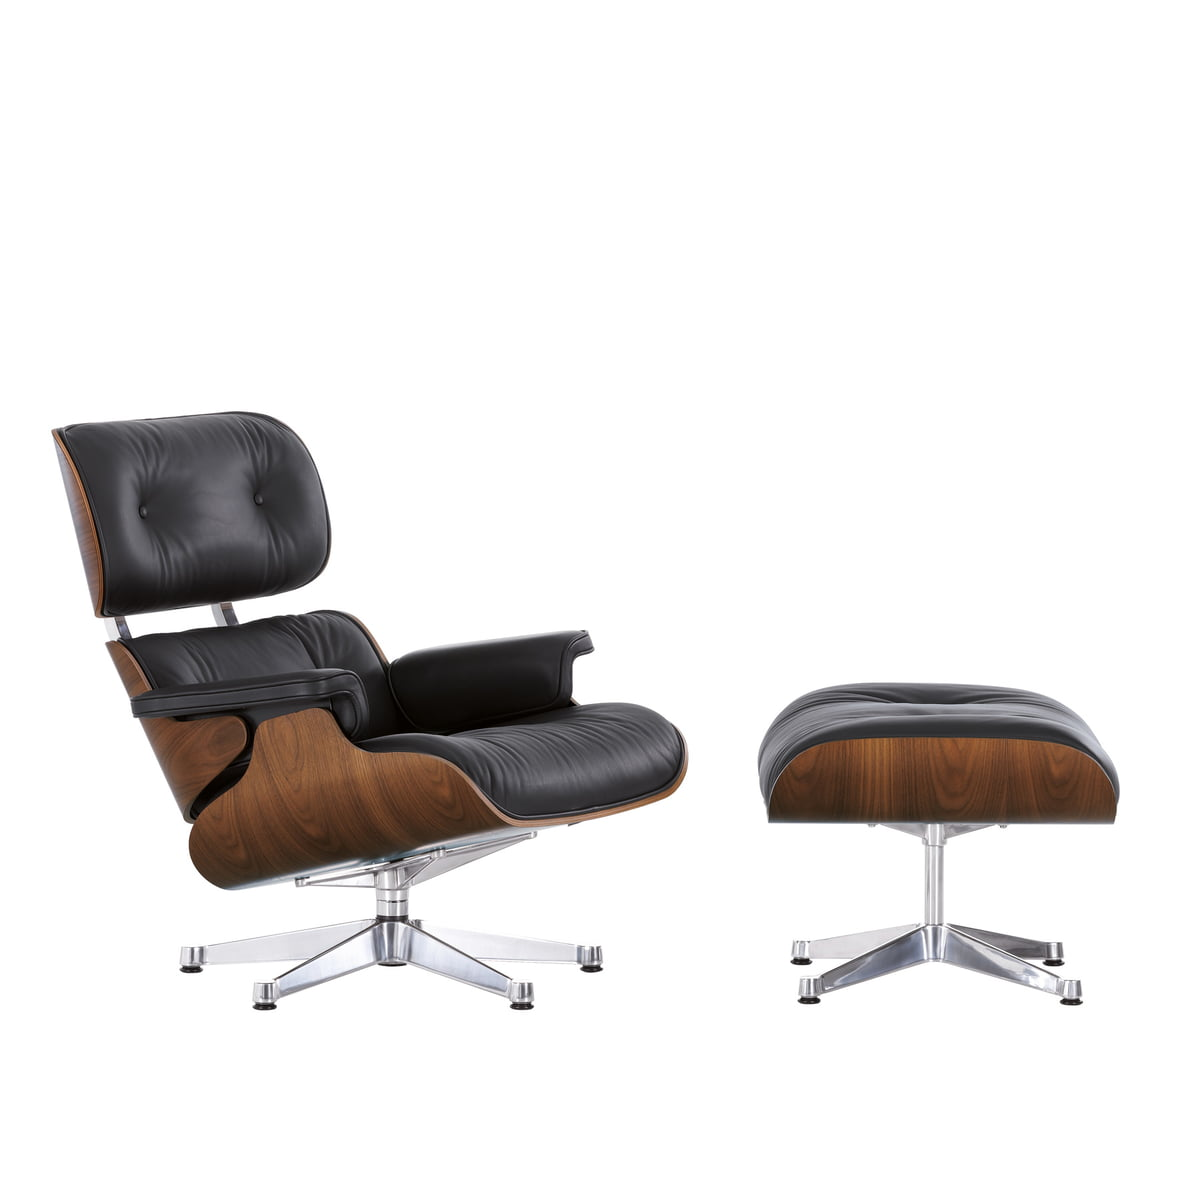 black vitra lounge chair in walnut in the shop - vitra  lounge chair  ottoman in walnut chromeplated